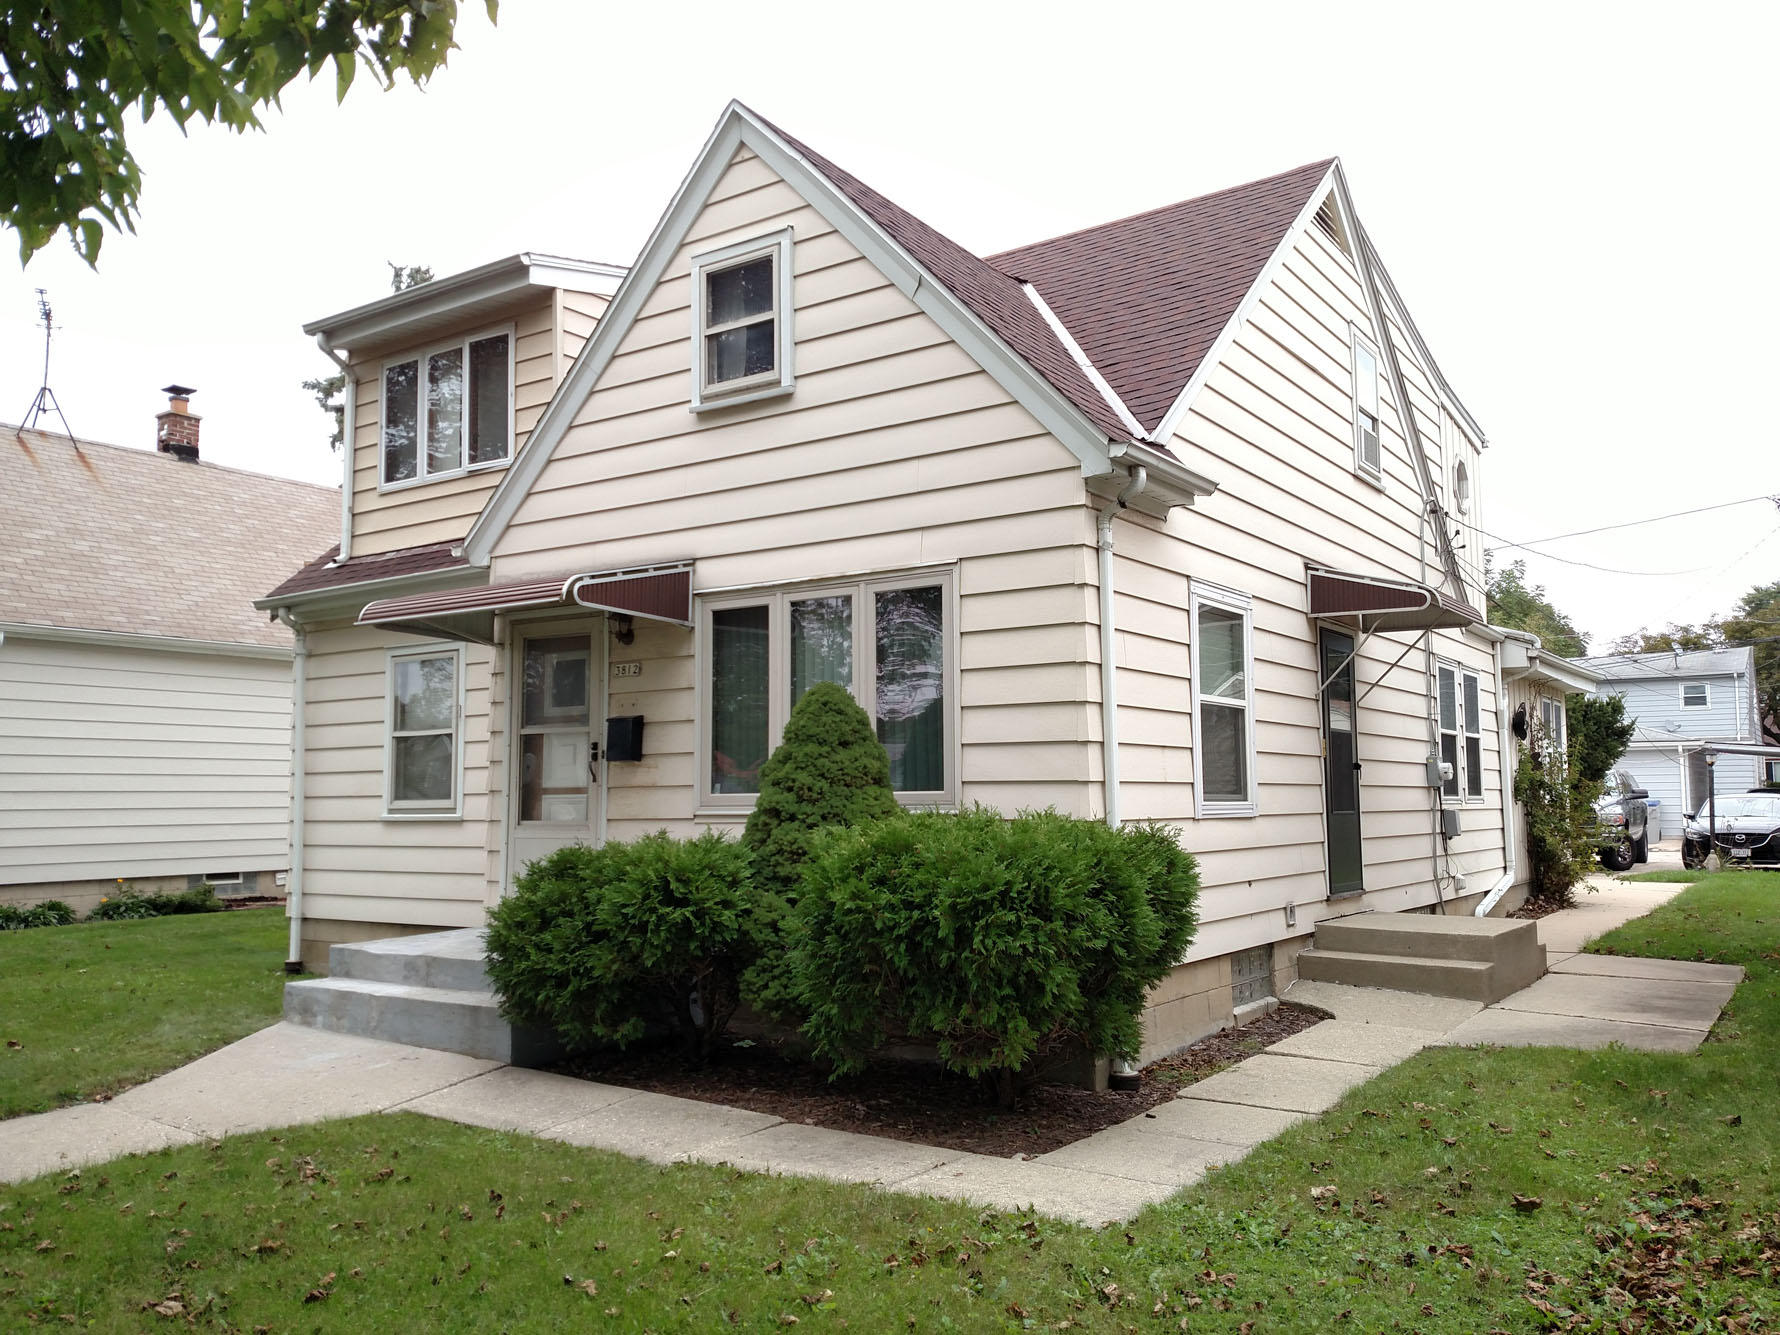 3812 16th St, Milwaukee, Wisconsin 53221, 6 Bedrooms Bedrooms, 11 Rooms Rooms,2 BathroomsBathrooms,Single-Family,For Sale,16th St,1610574